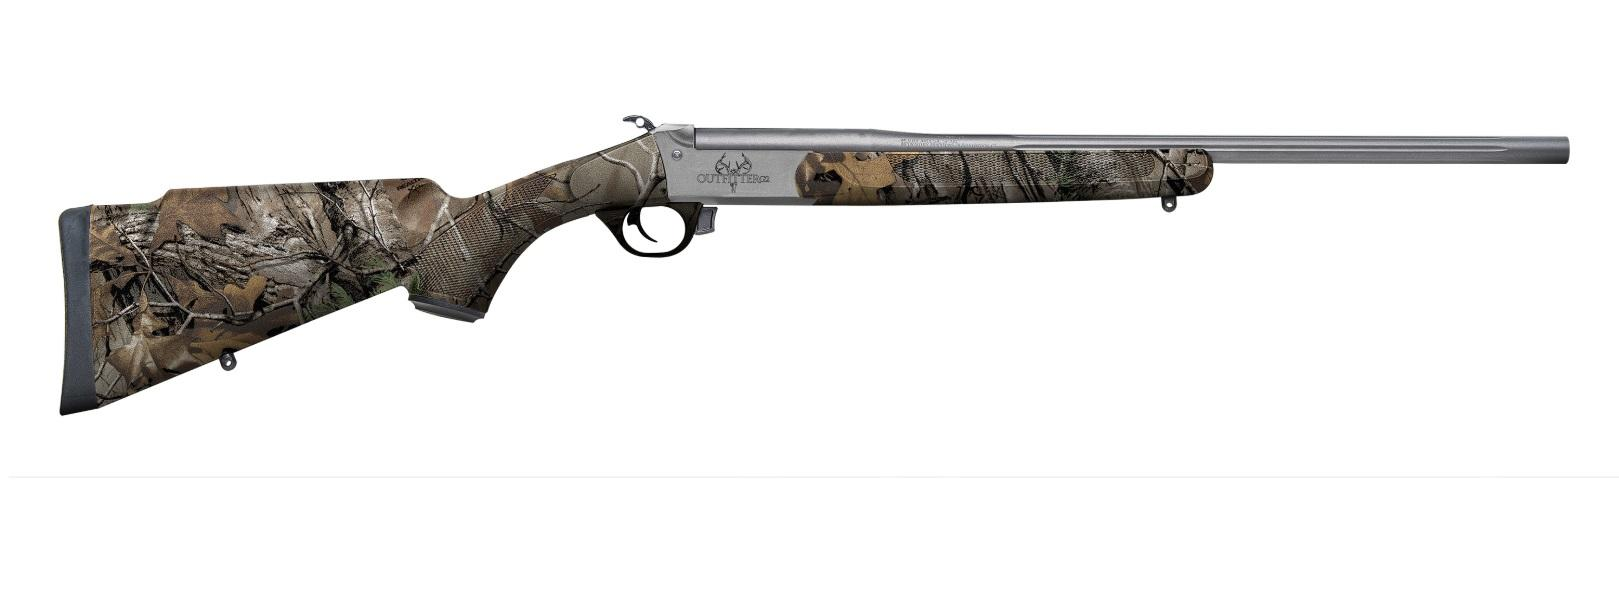 OUTFITTER G2 44MAG 22 SS     - REALTREE EDGE CERAKOTE SS BBL